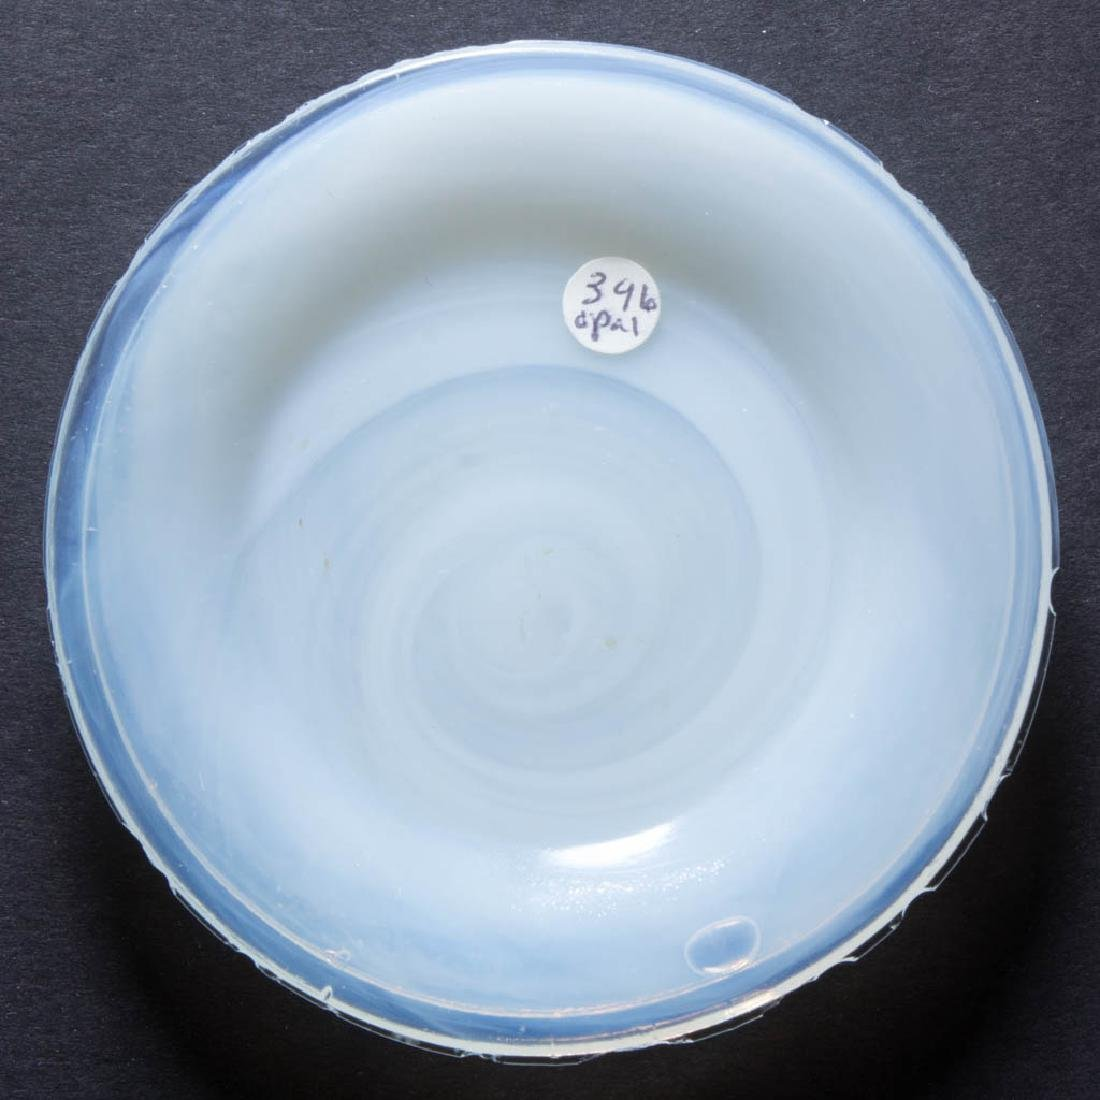 LEE/ROSE NO. 396 CUP PLATE